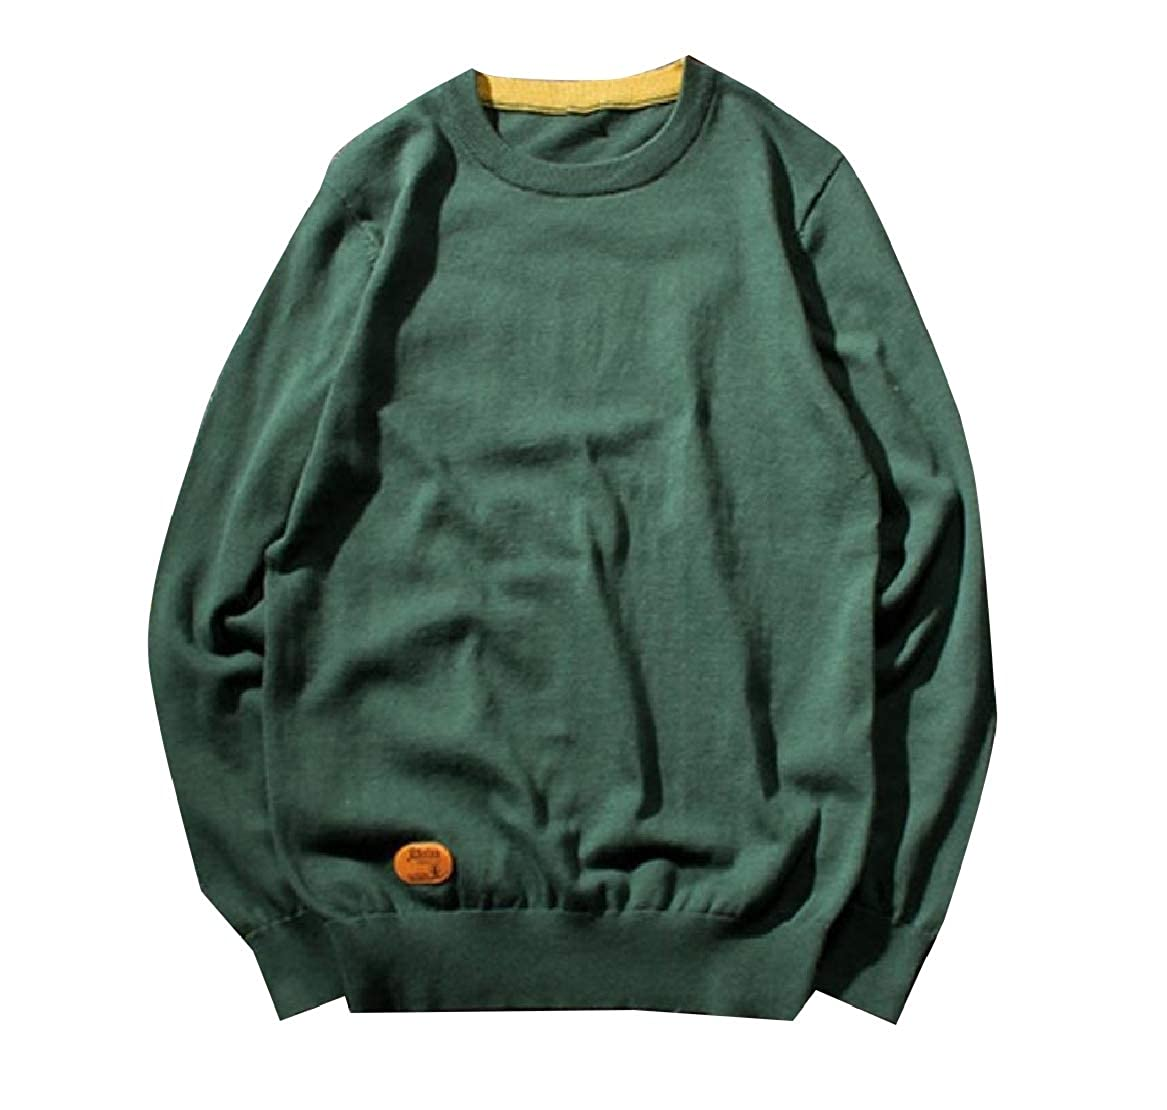 YUNY Mens Regular Relaxed Fit Relaxed-Fit Soft Knit Autumn Sweaters Army Green L